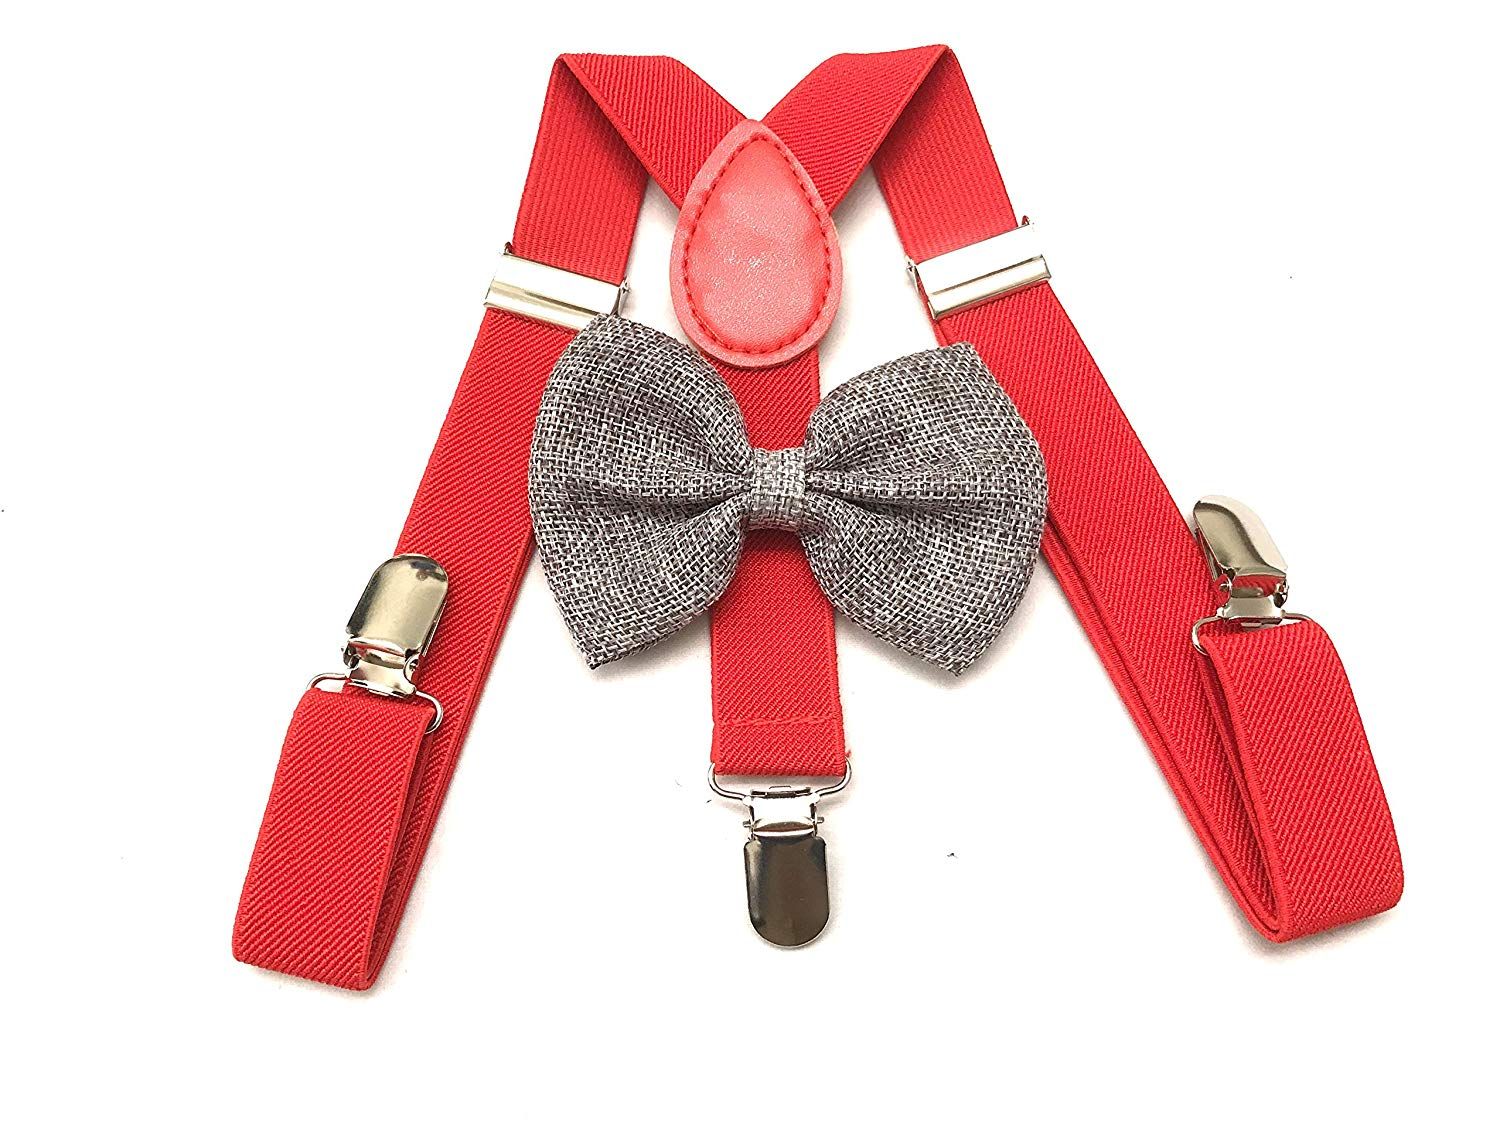 848a70d1e68 Get Quotations · Child Kids Red Suspenders Burlap Bow tie Set - Adjustable  Suspender for Boys and Girls